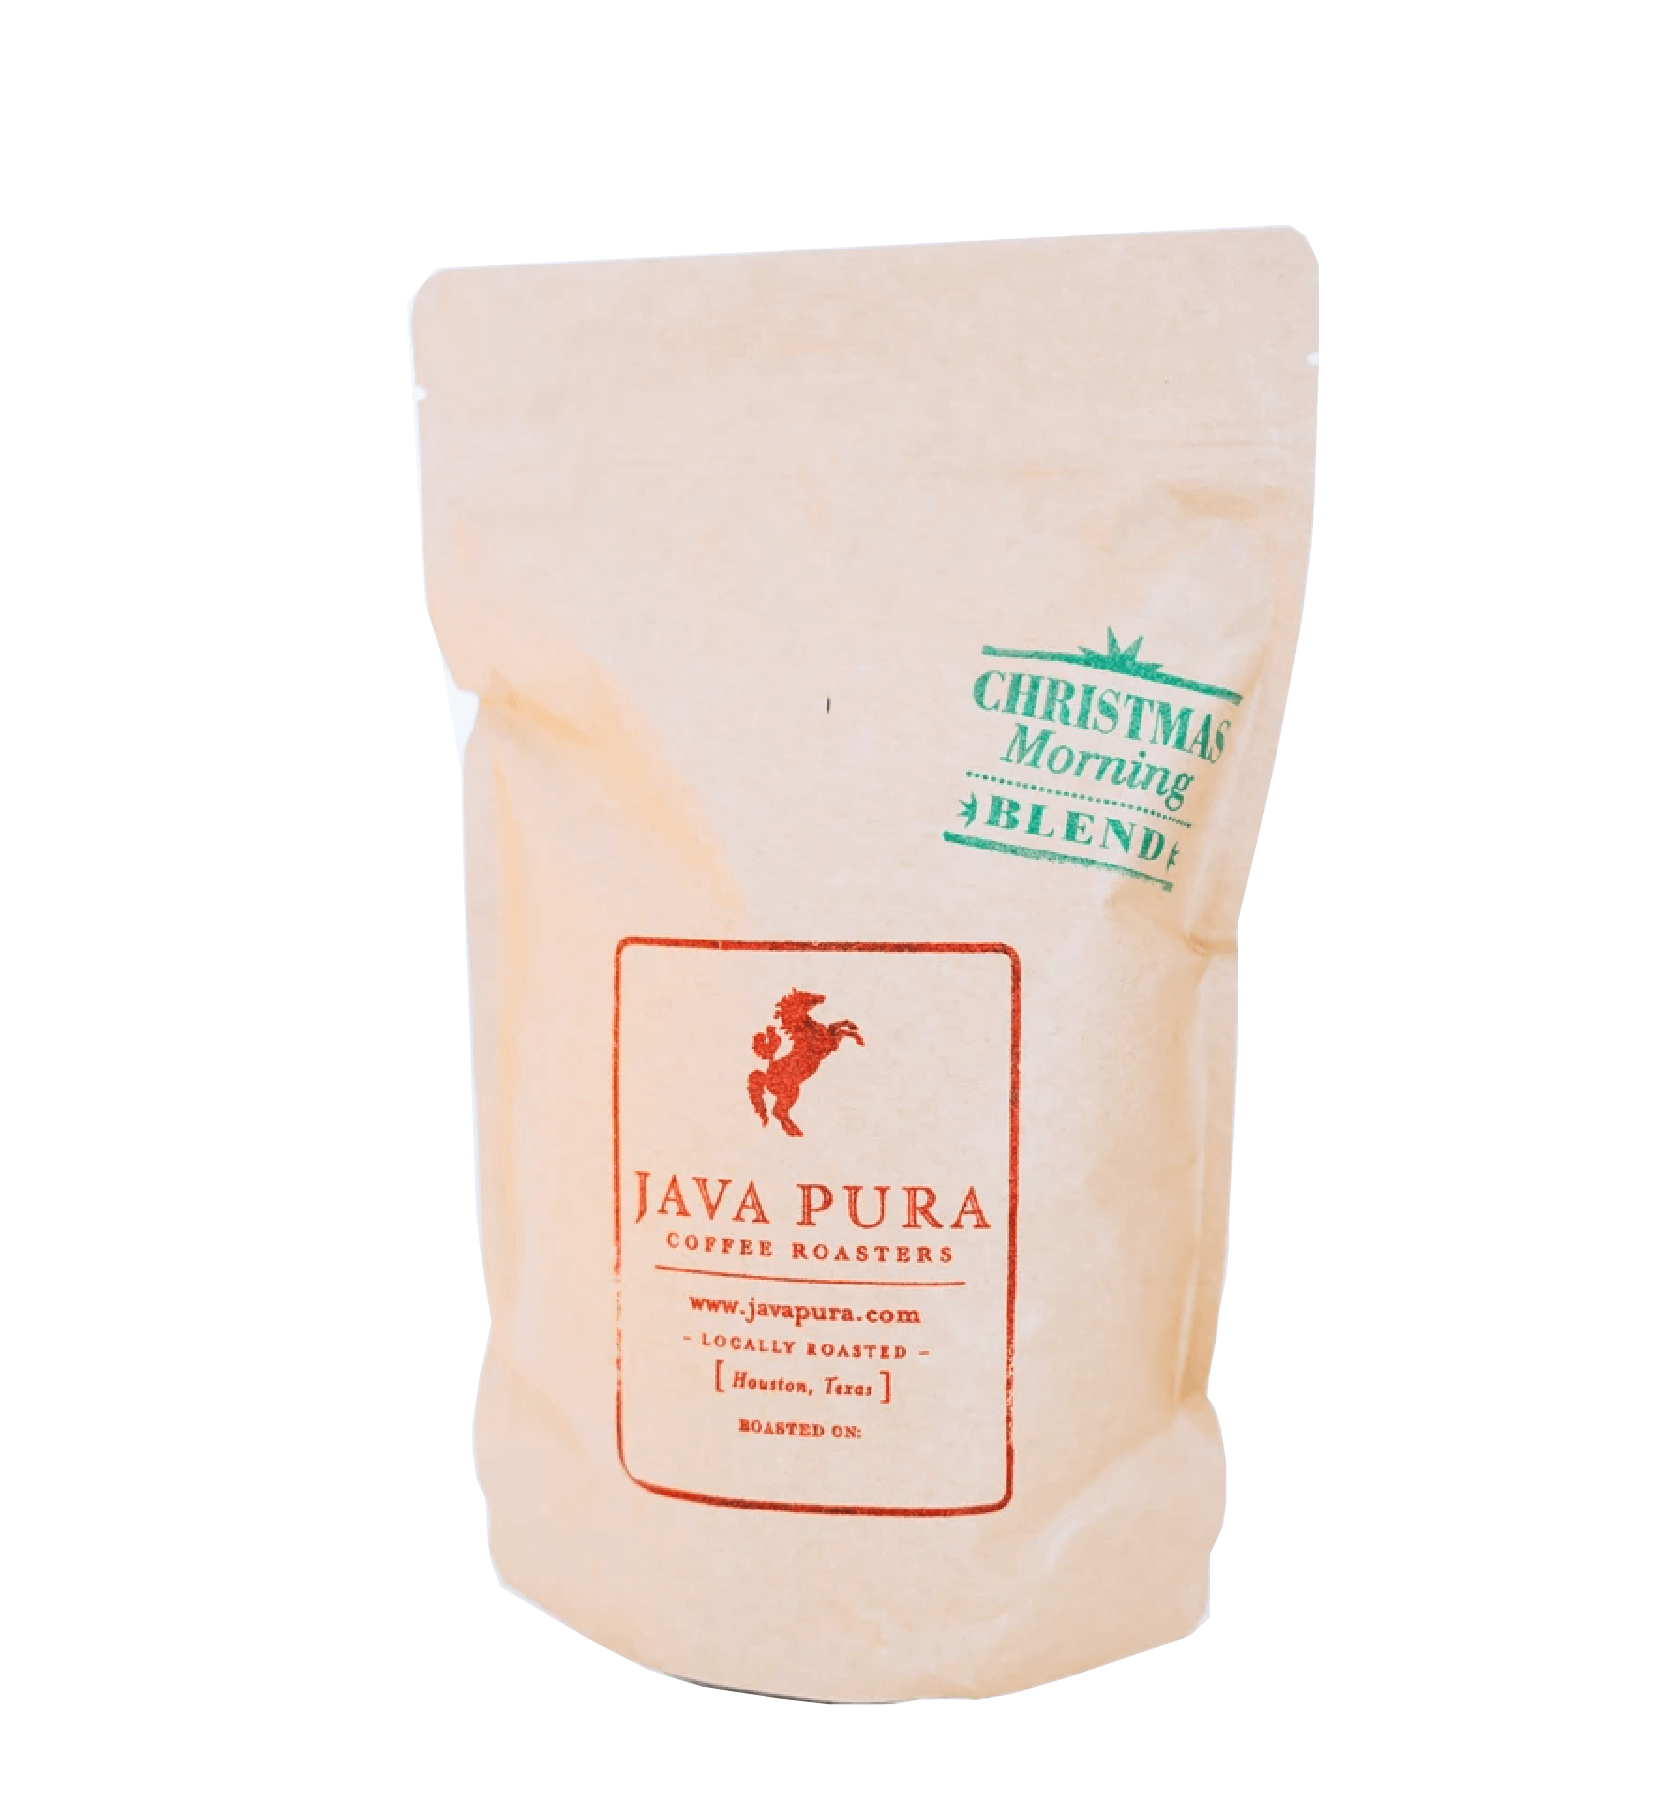 Christmas Morning Blend from Java Pura